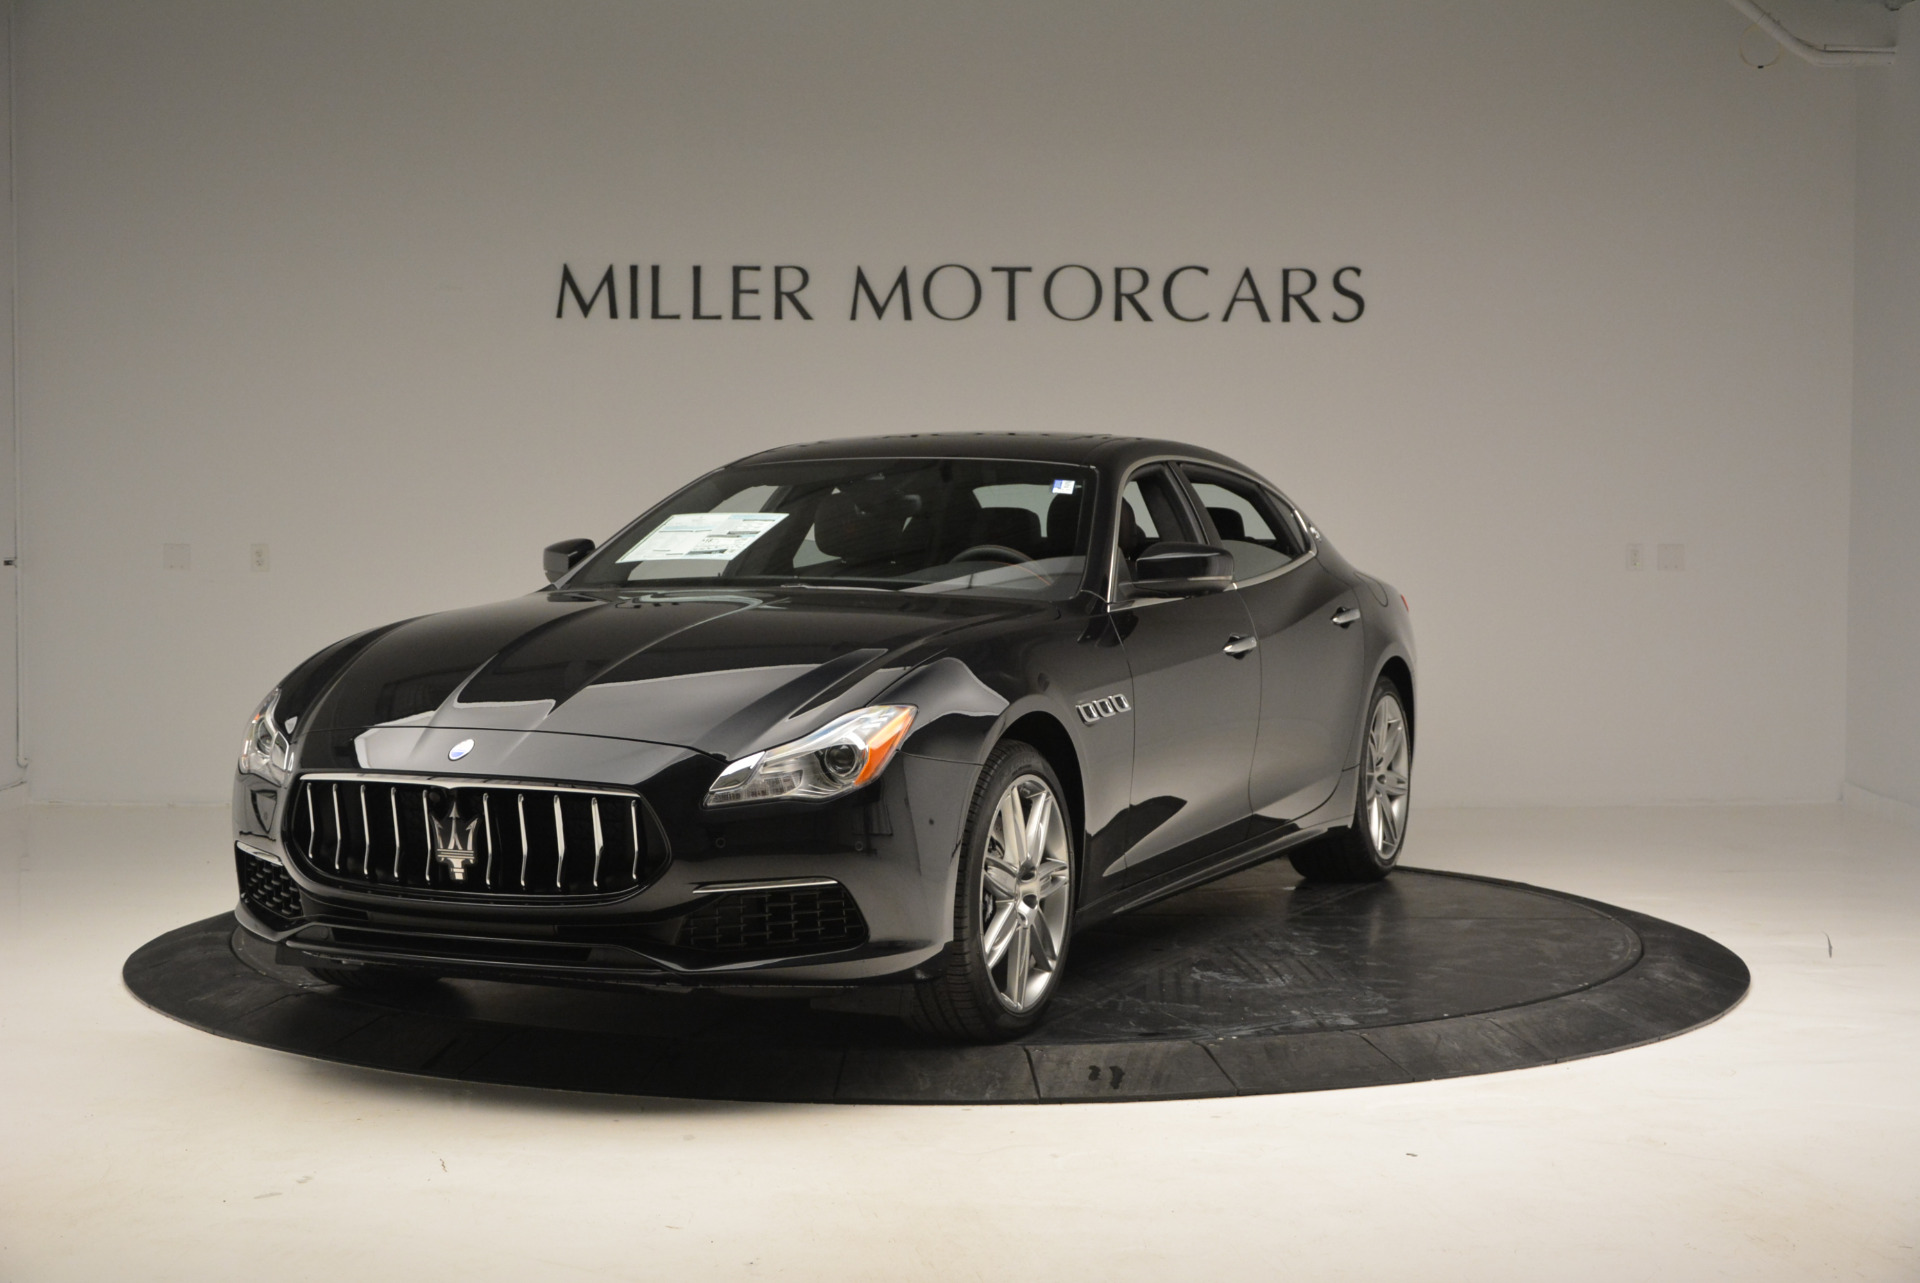 New 2017 Maserati Quattroporte S Q4 GranLusso for sale Sold at Bugatti of Greenwich in Greenwich CT 06830 1